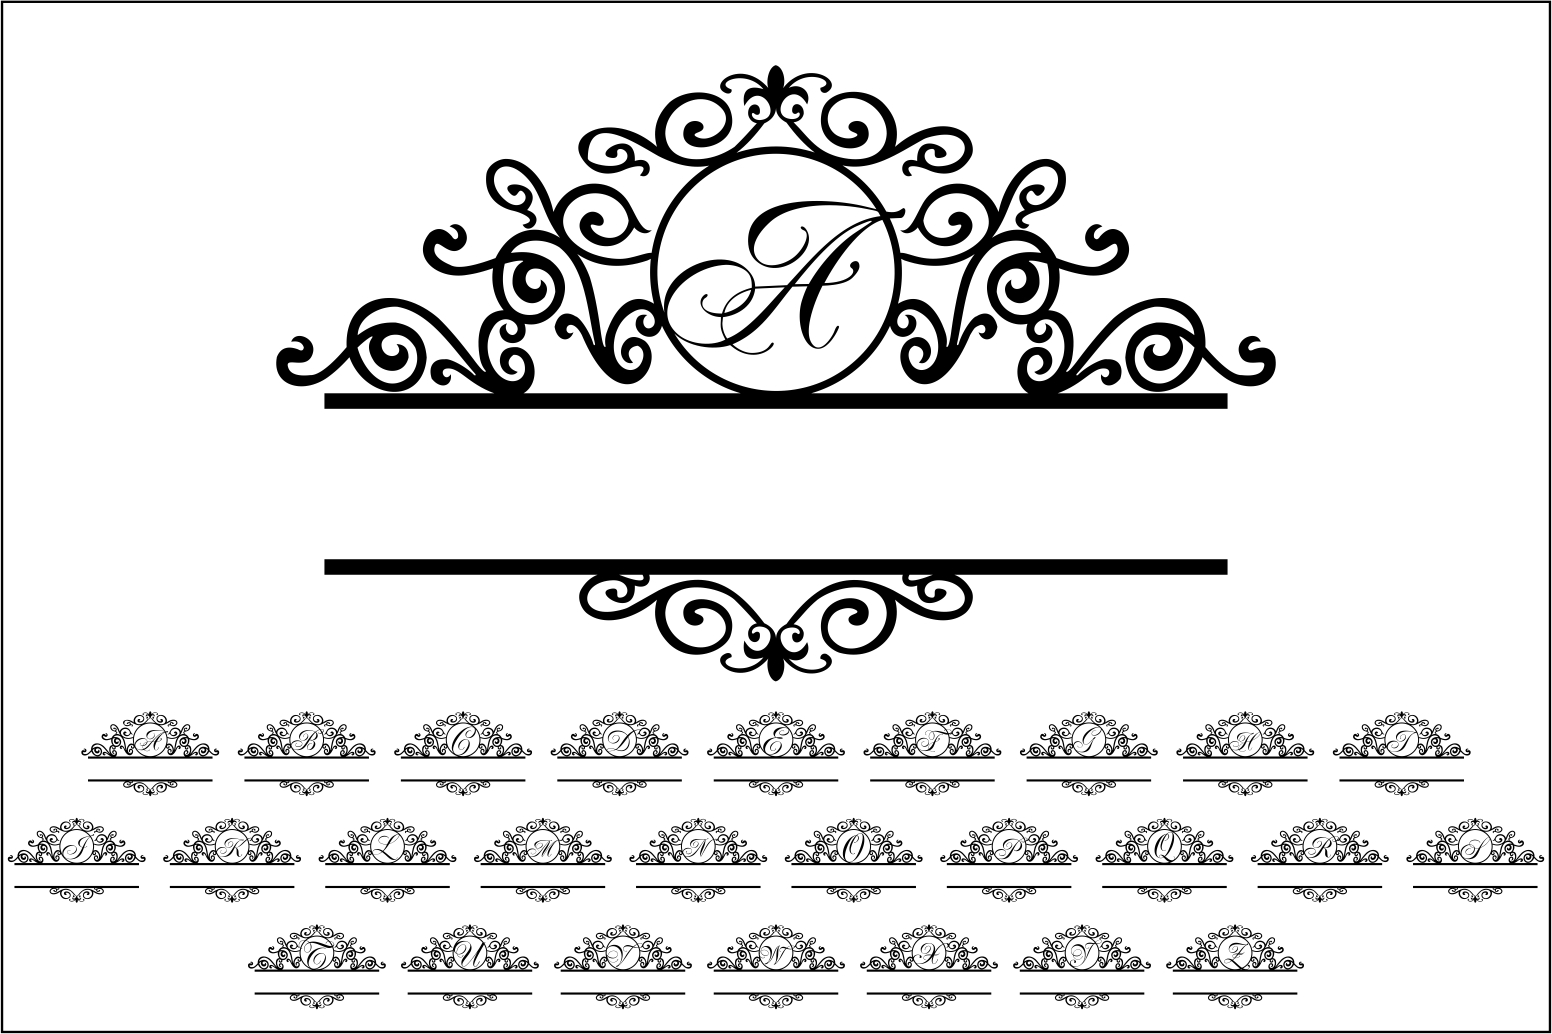 Download Free Monogram Alphabet Graphic By Bn3300877 Creative Fabrica for Cricut Explore, Silhouette and other cutting machines.